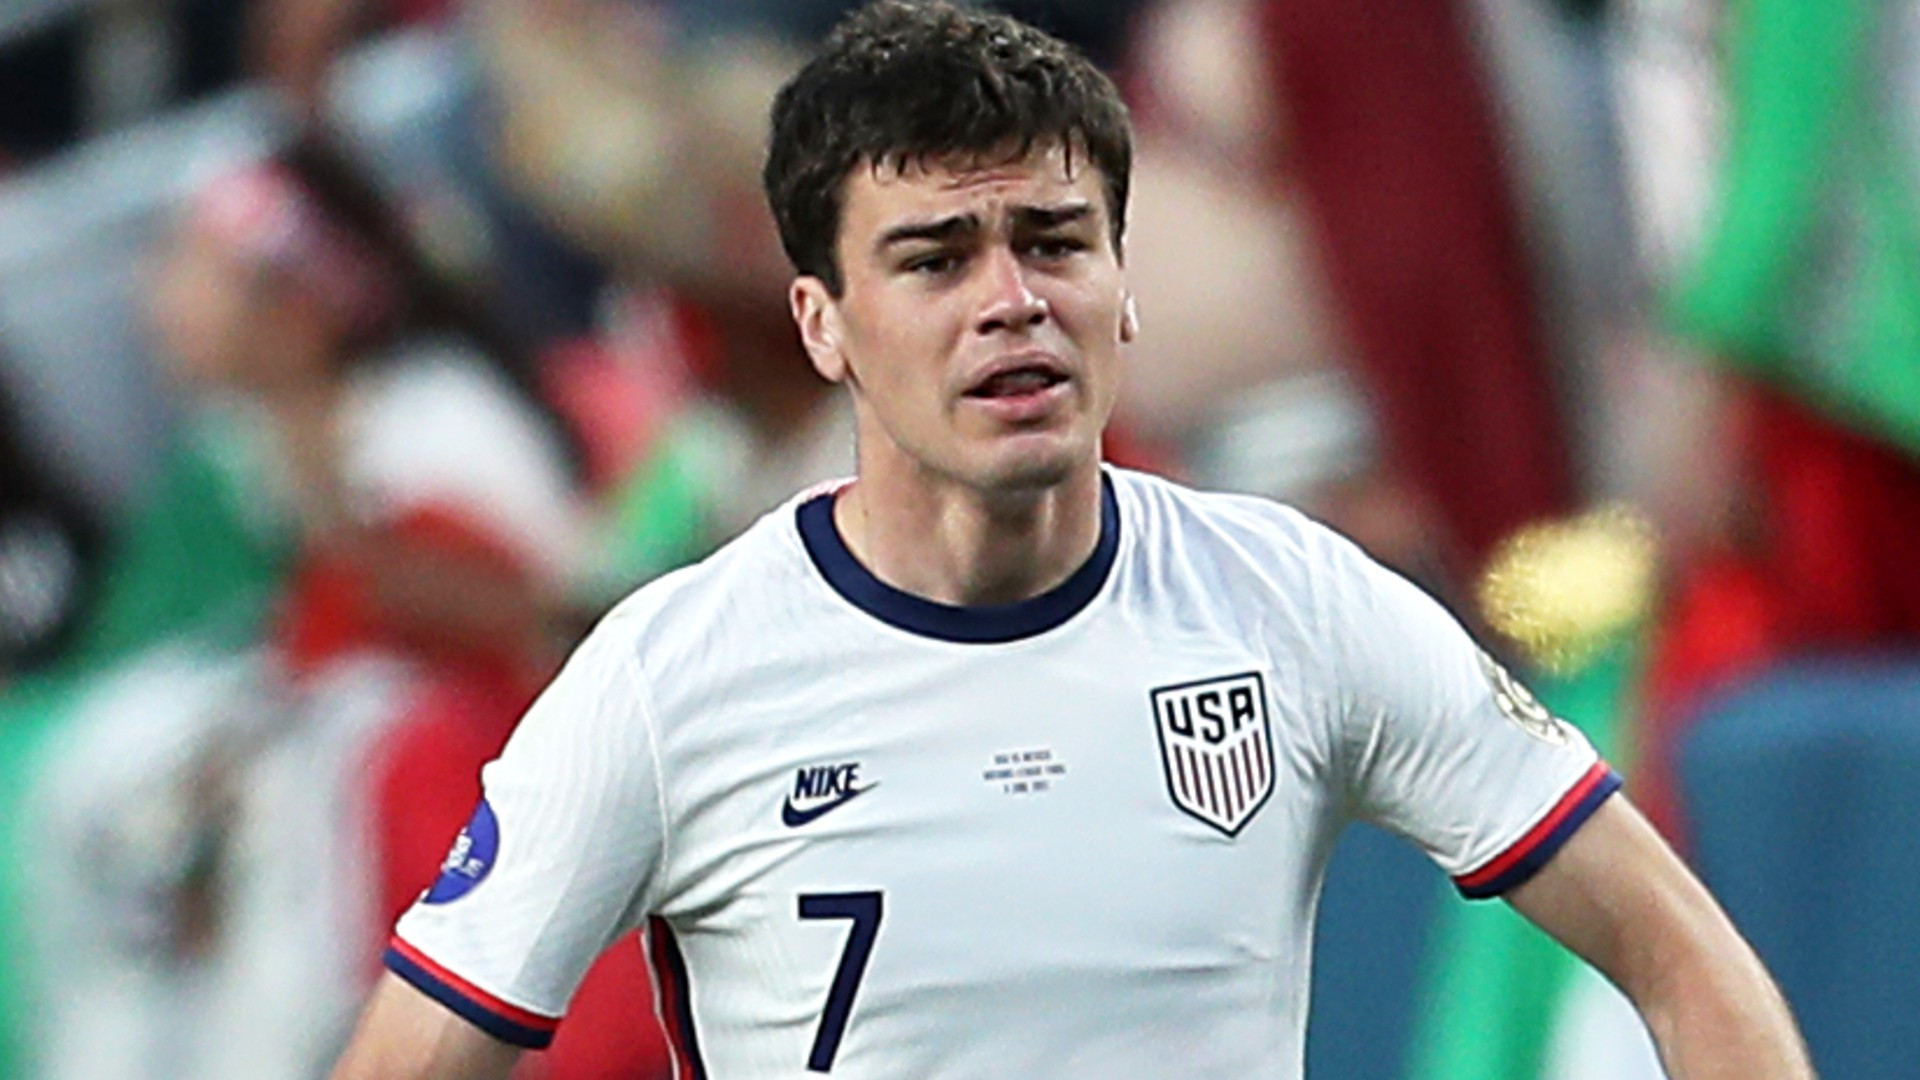 Fan who hit USMNT's Gio Reyna in the head with a projectile is arrested, banned and faces criminal charges